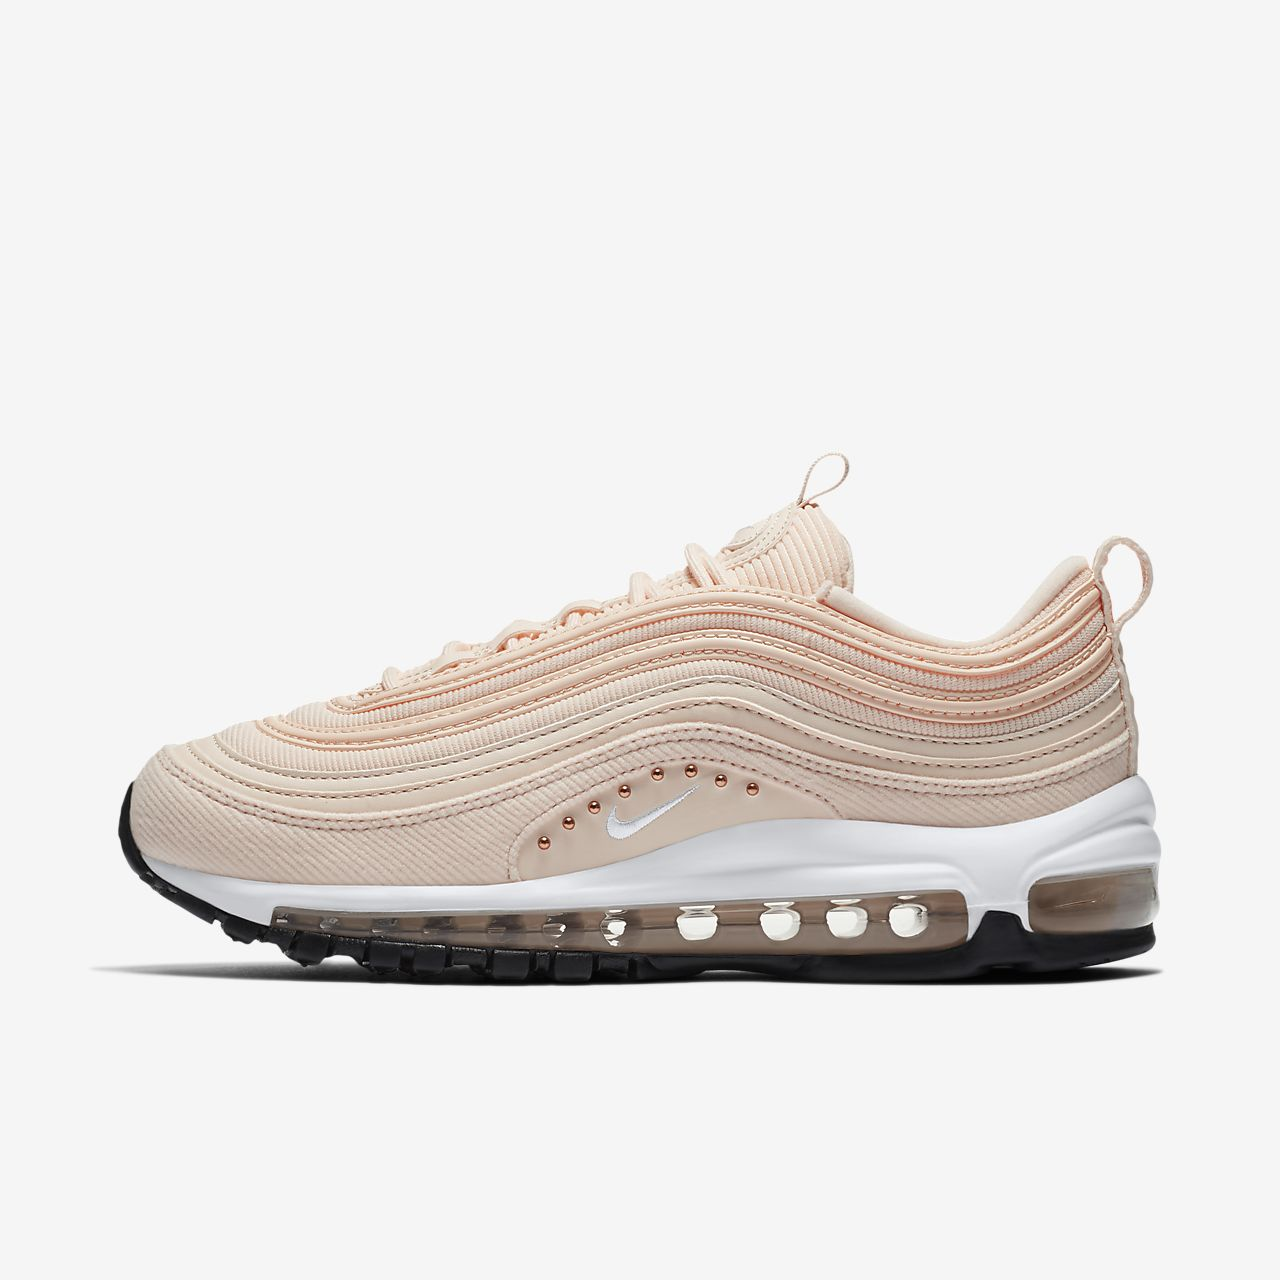 448580fdca ... new zealand nike air max 97 se metallic womens shoe 6d663 a9ef0